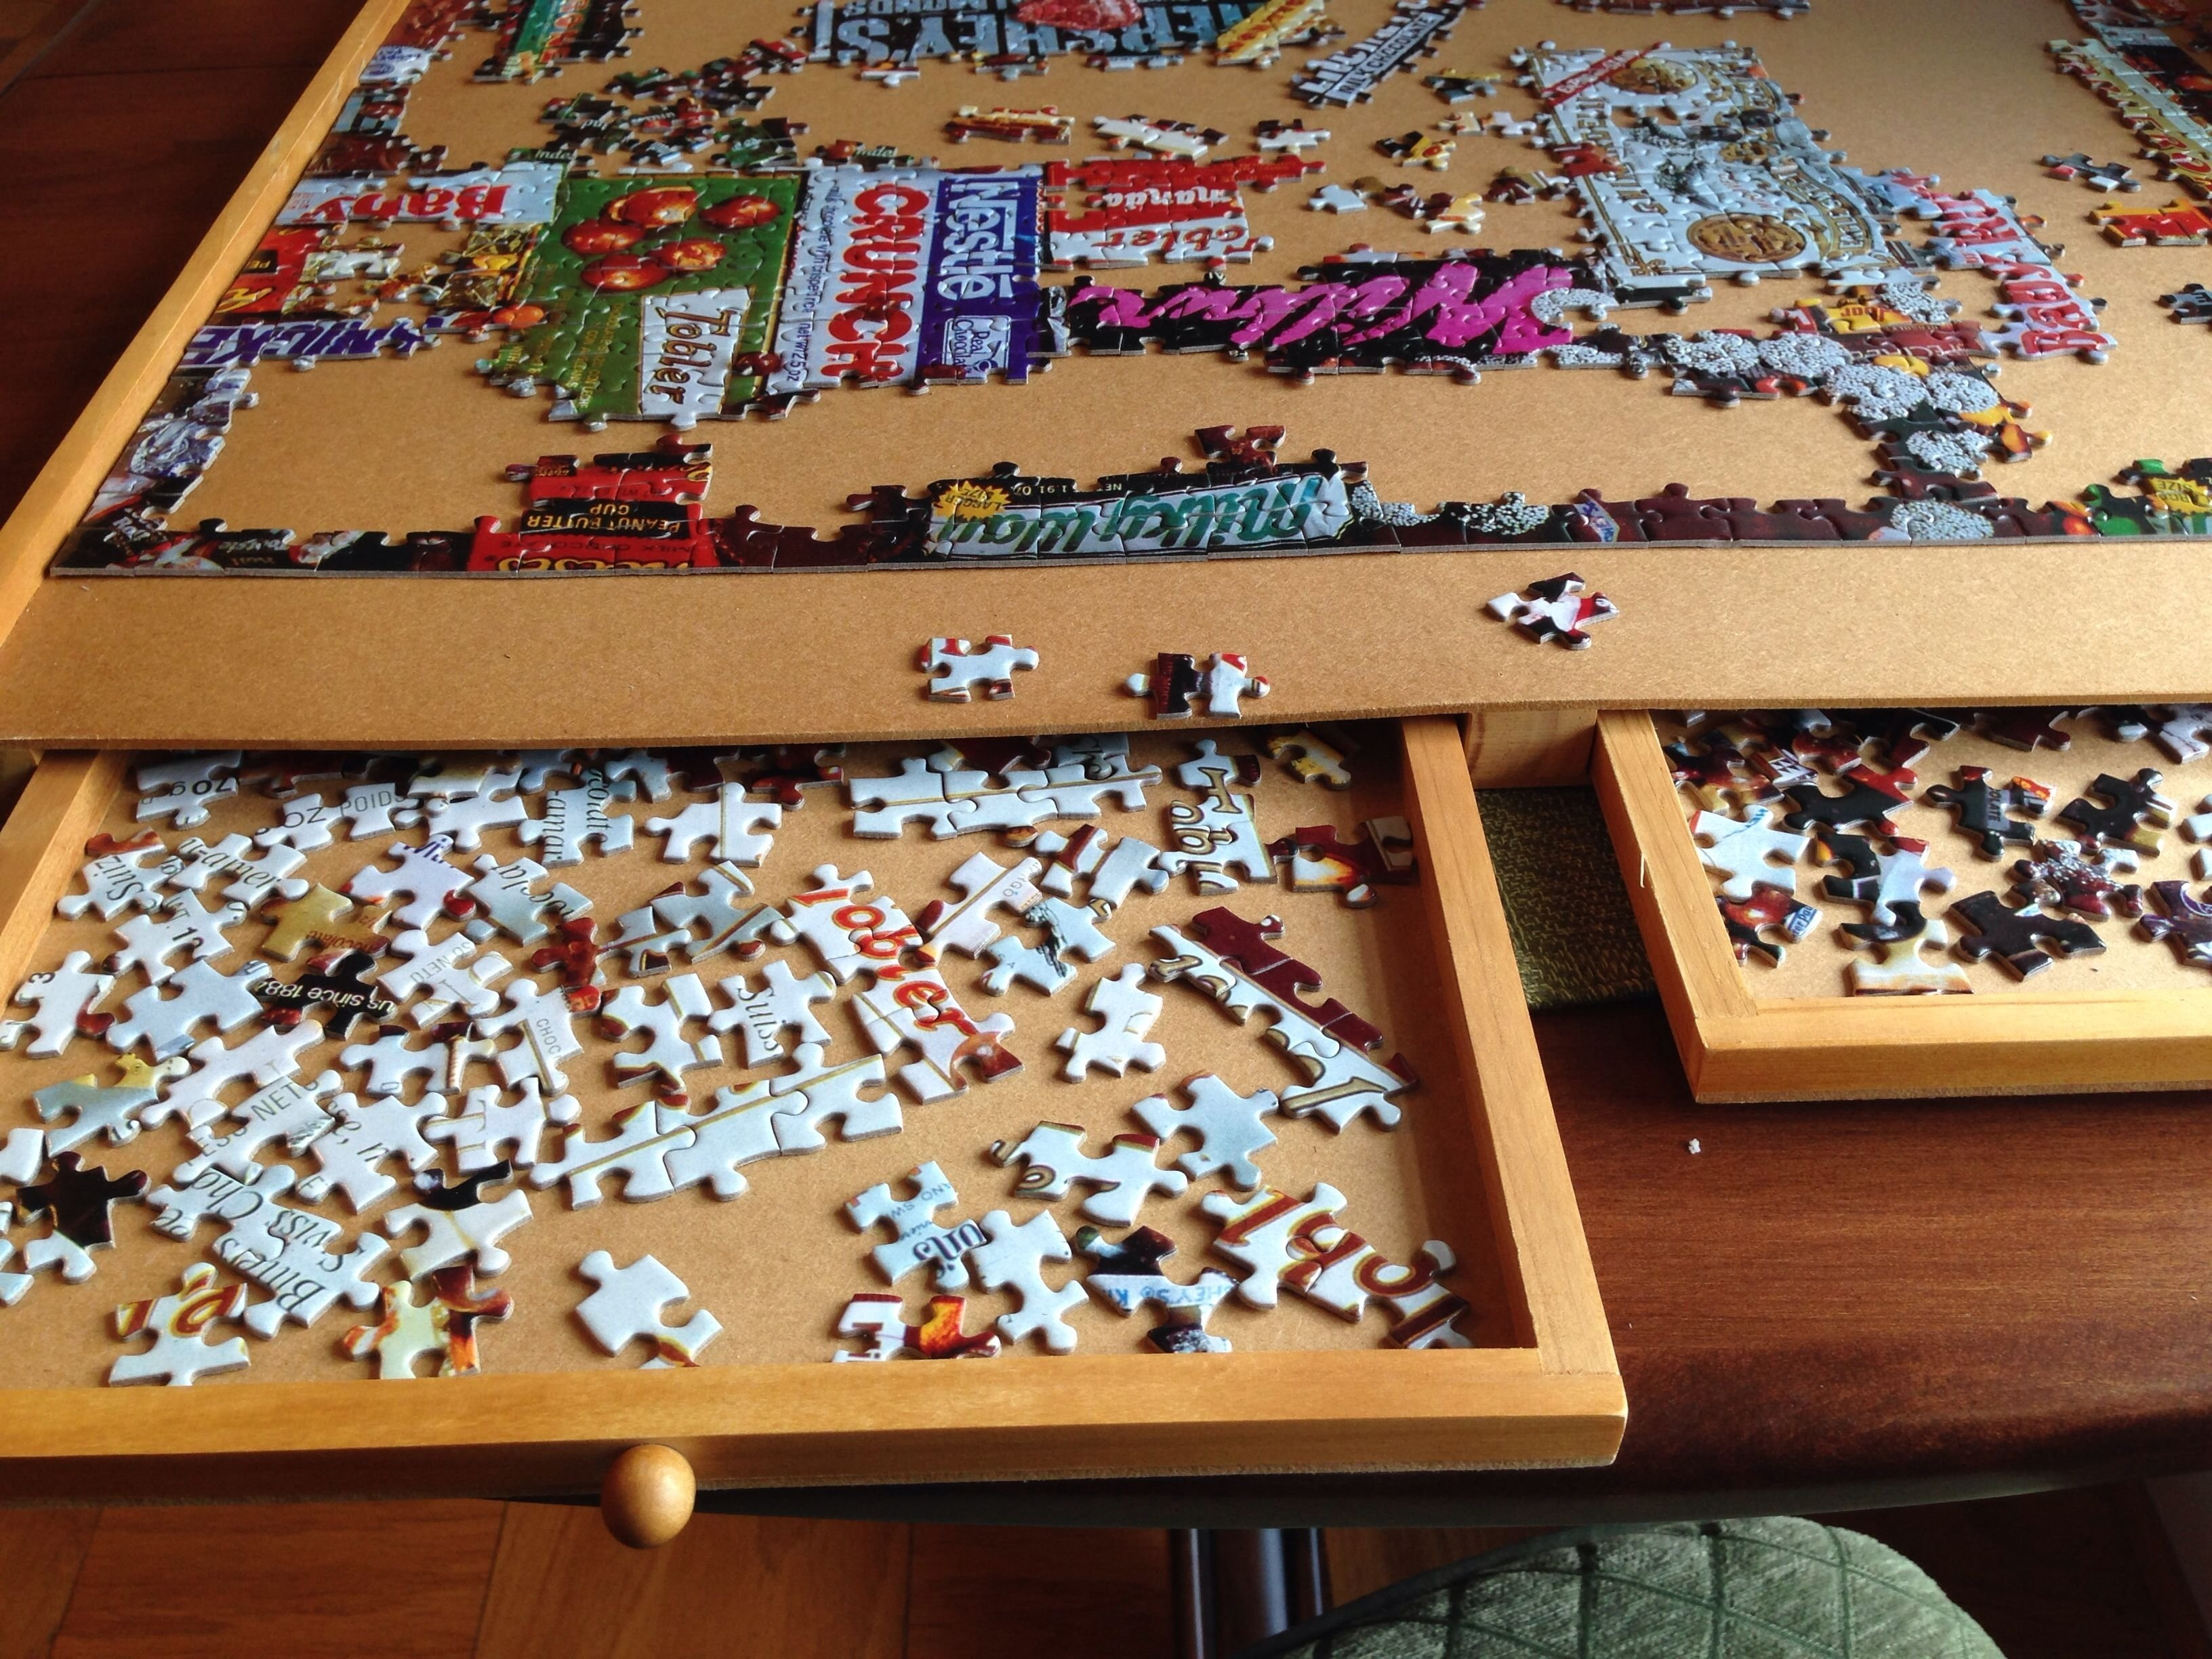 10 Great The Best Gift Idea Ever best gift idea ever for your puzzle loving friend little drawers